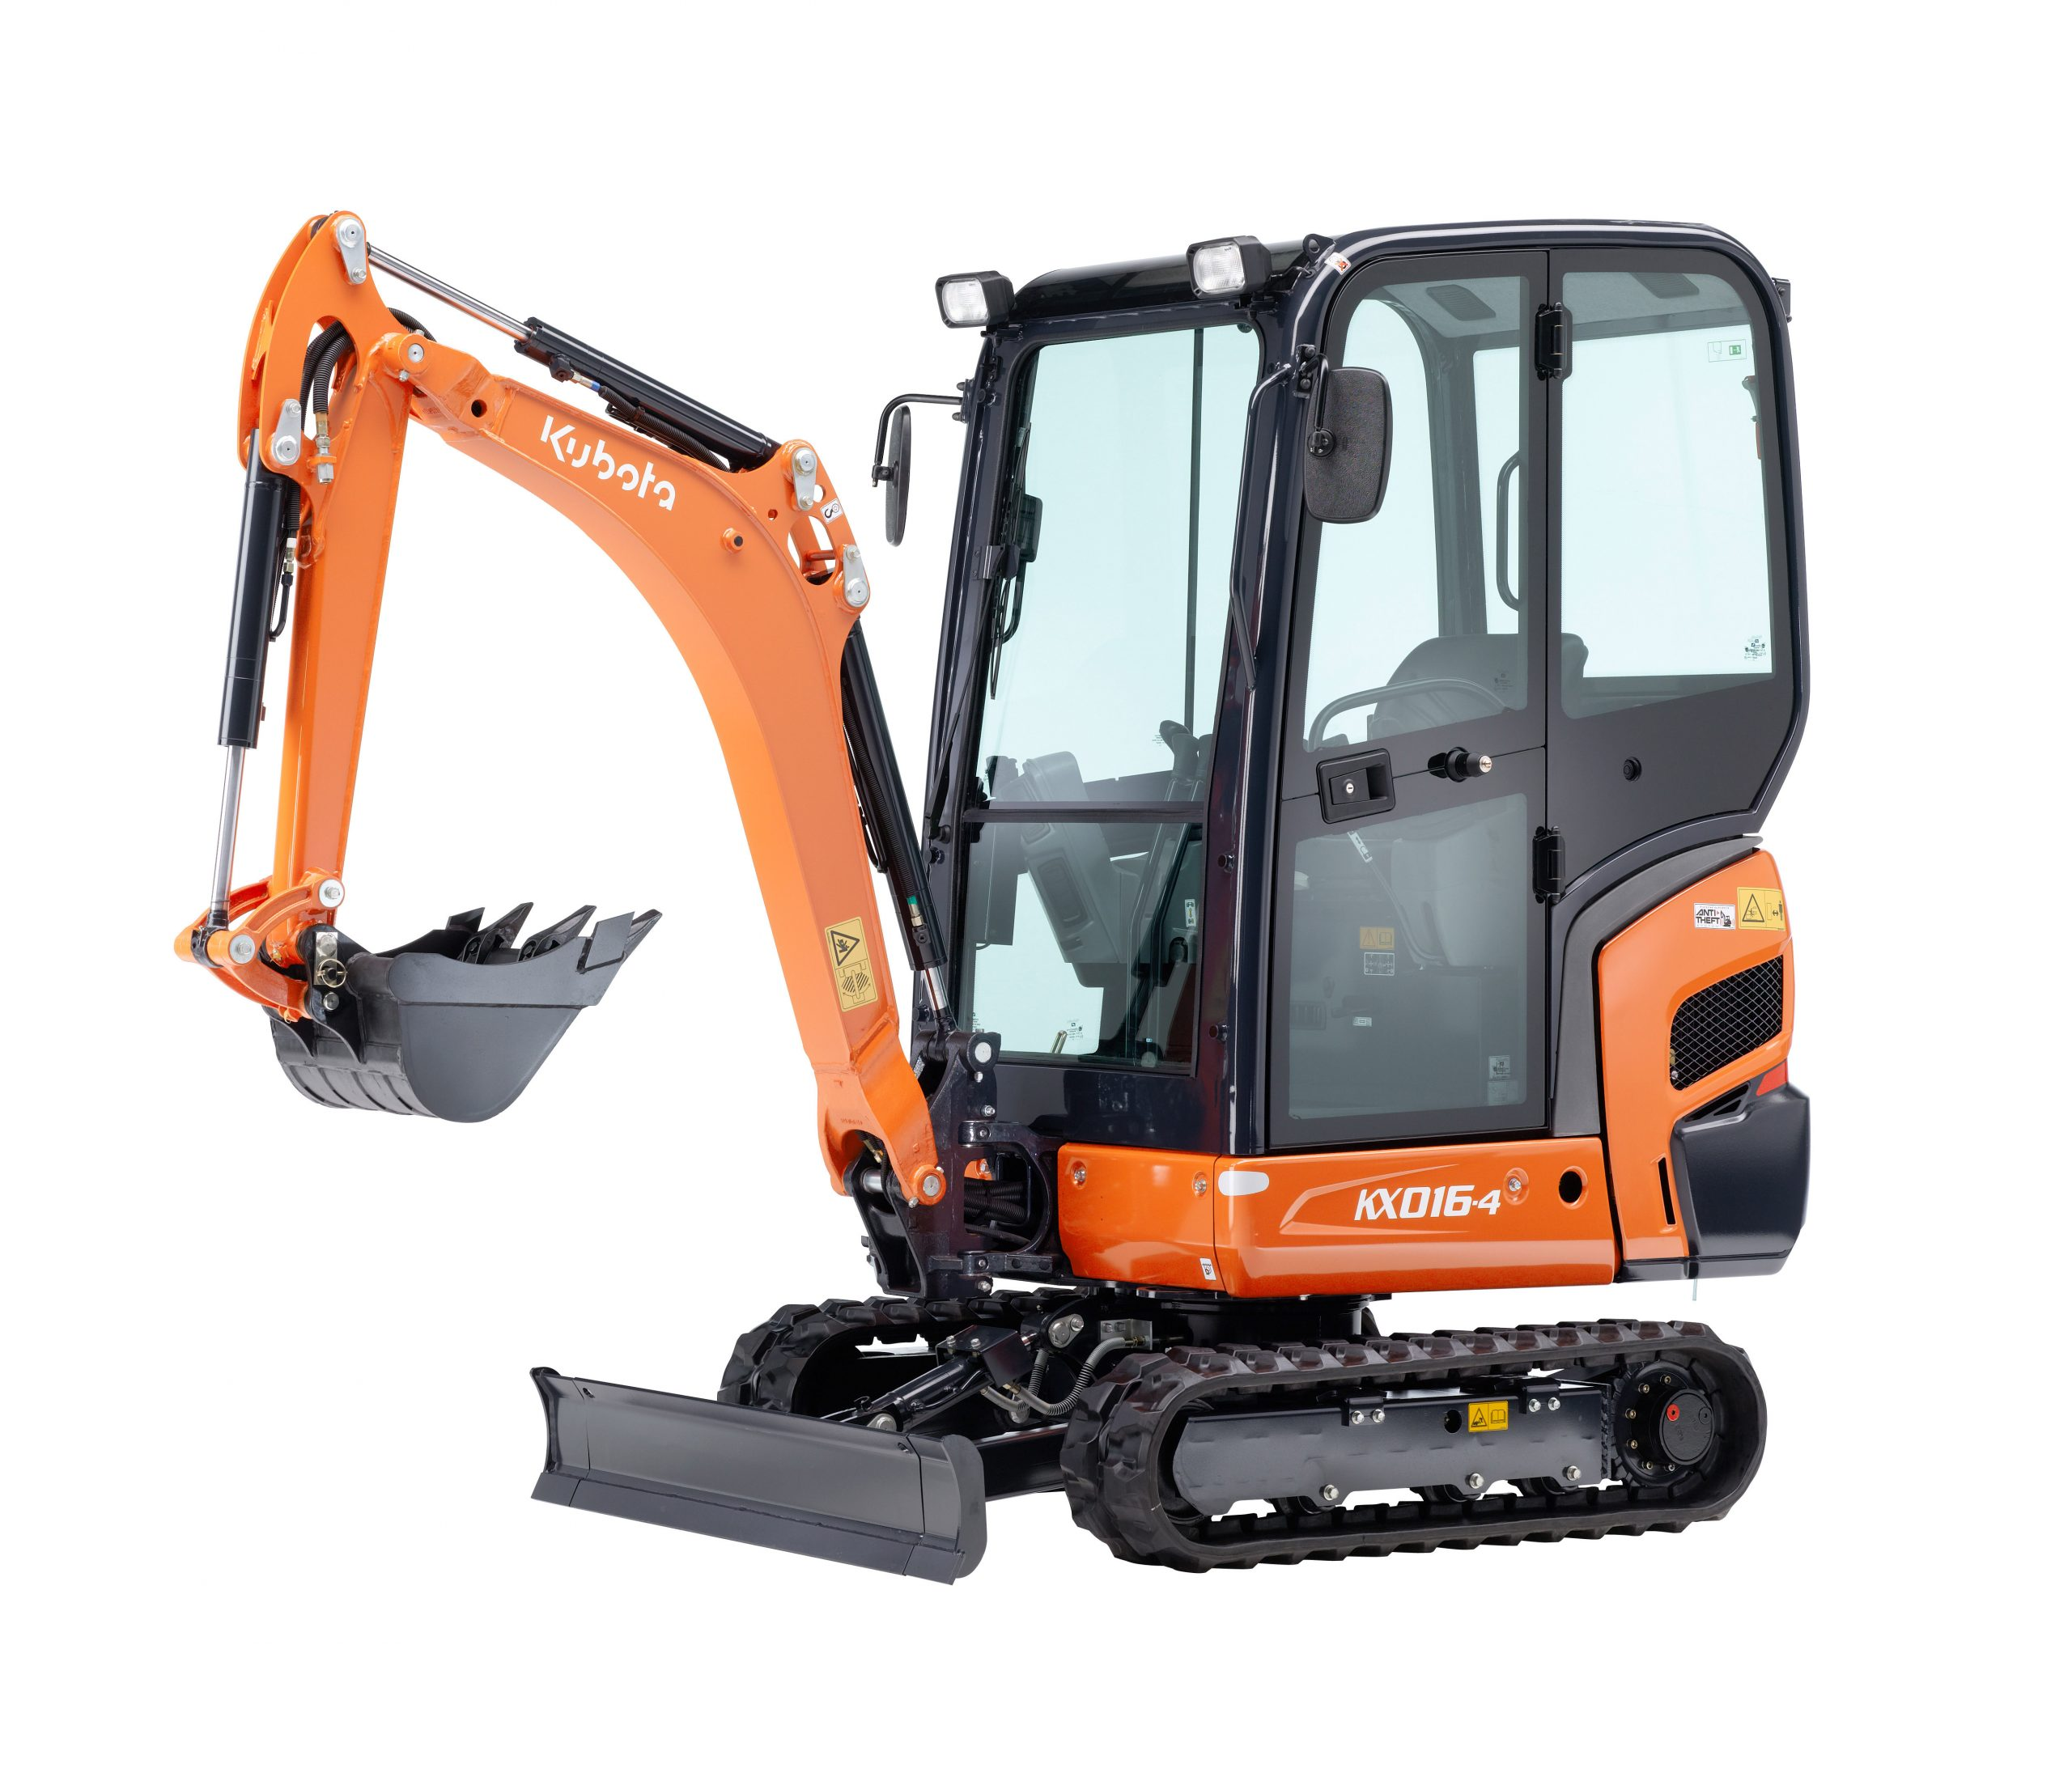 Hire or buy an excavator